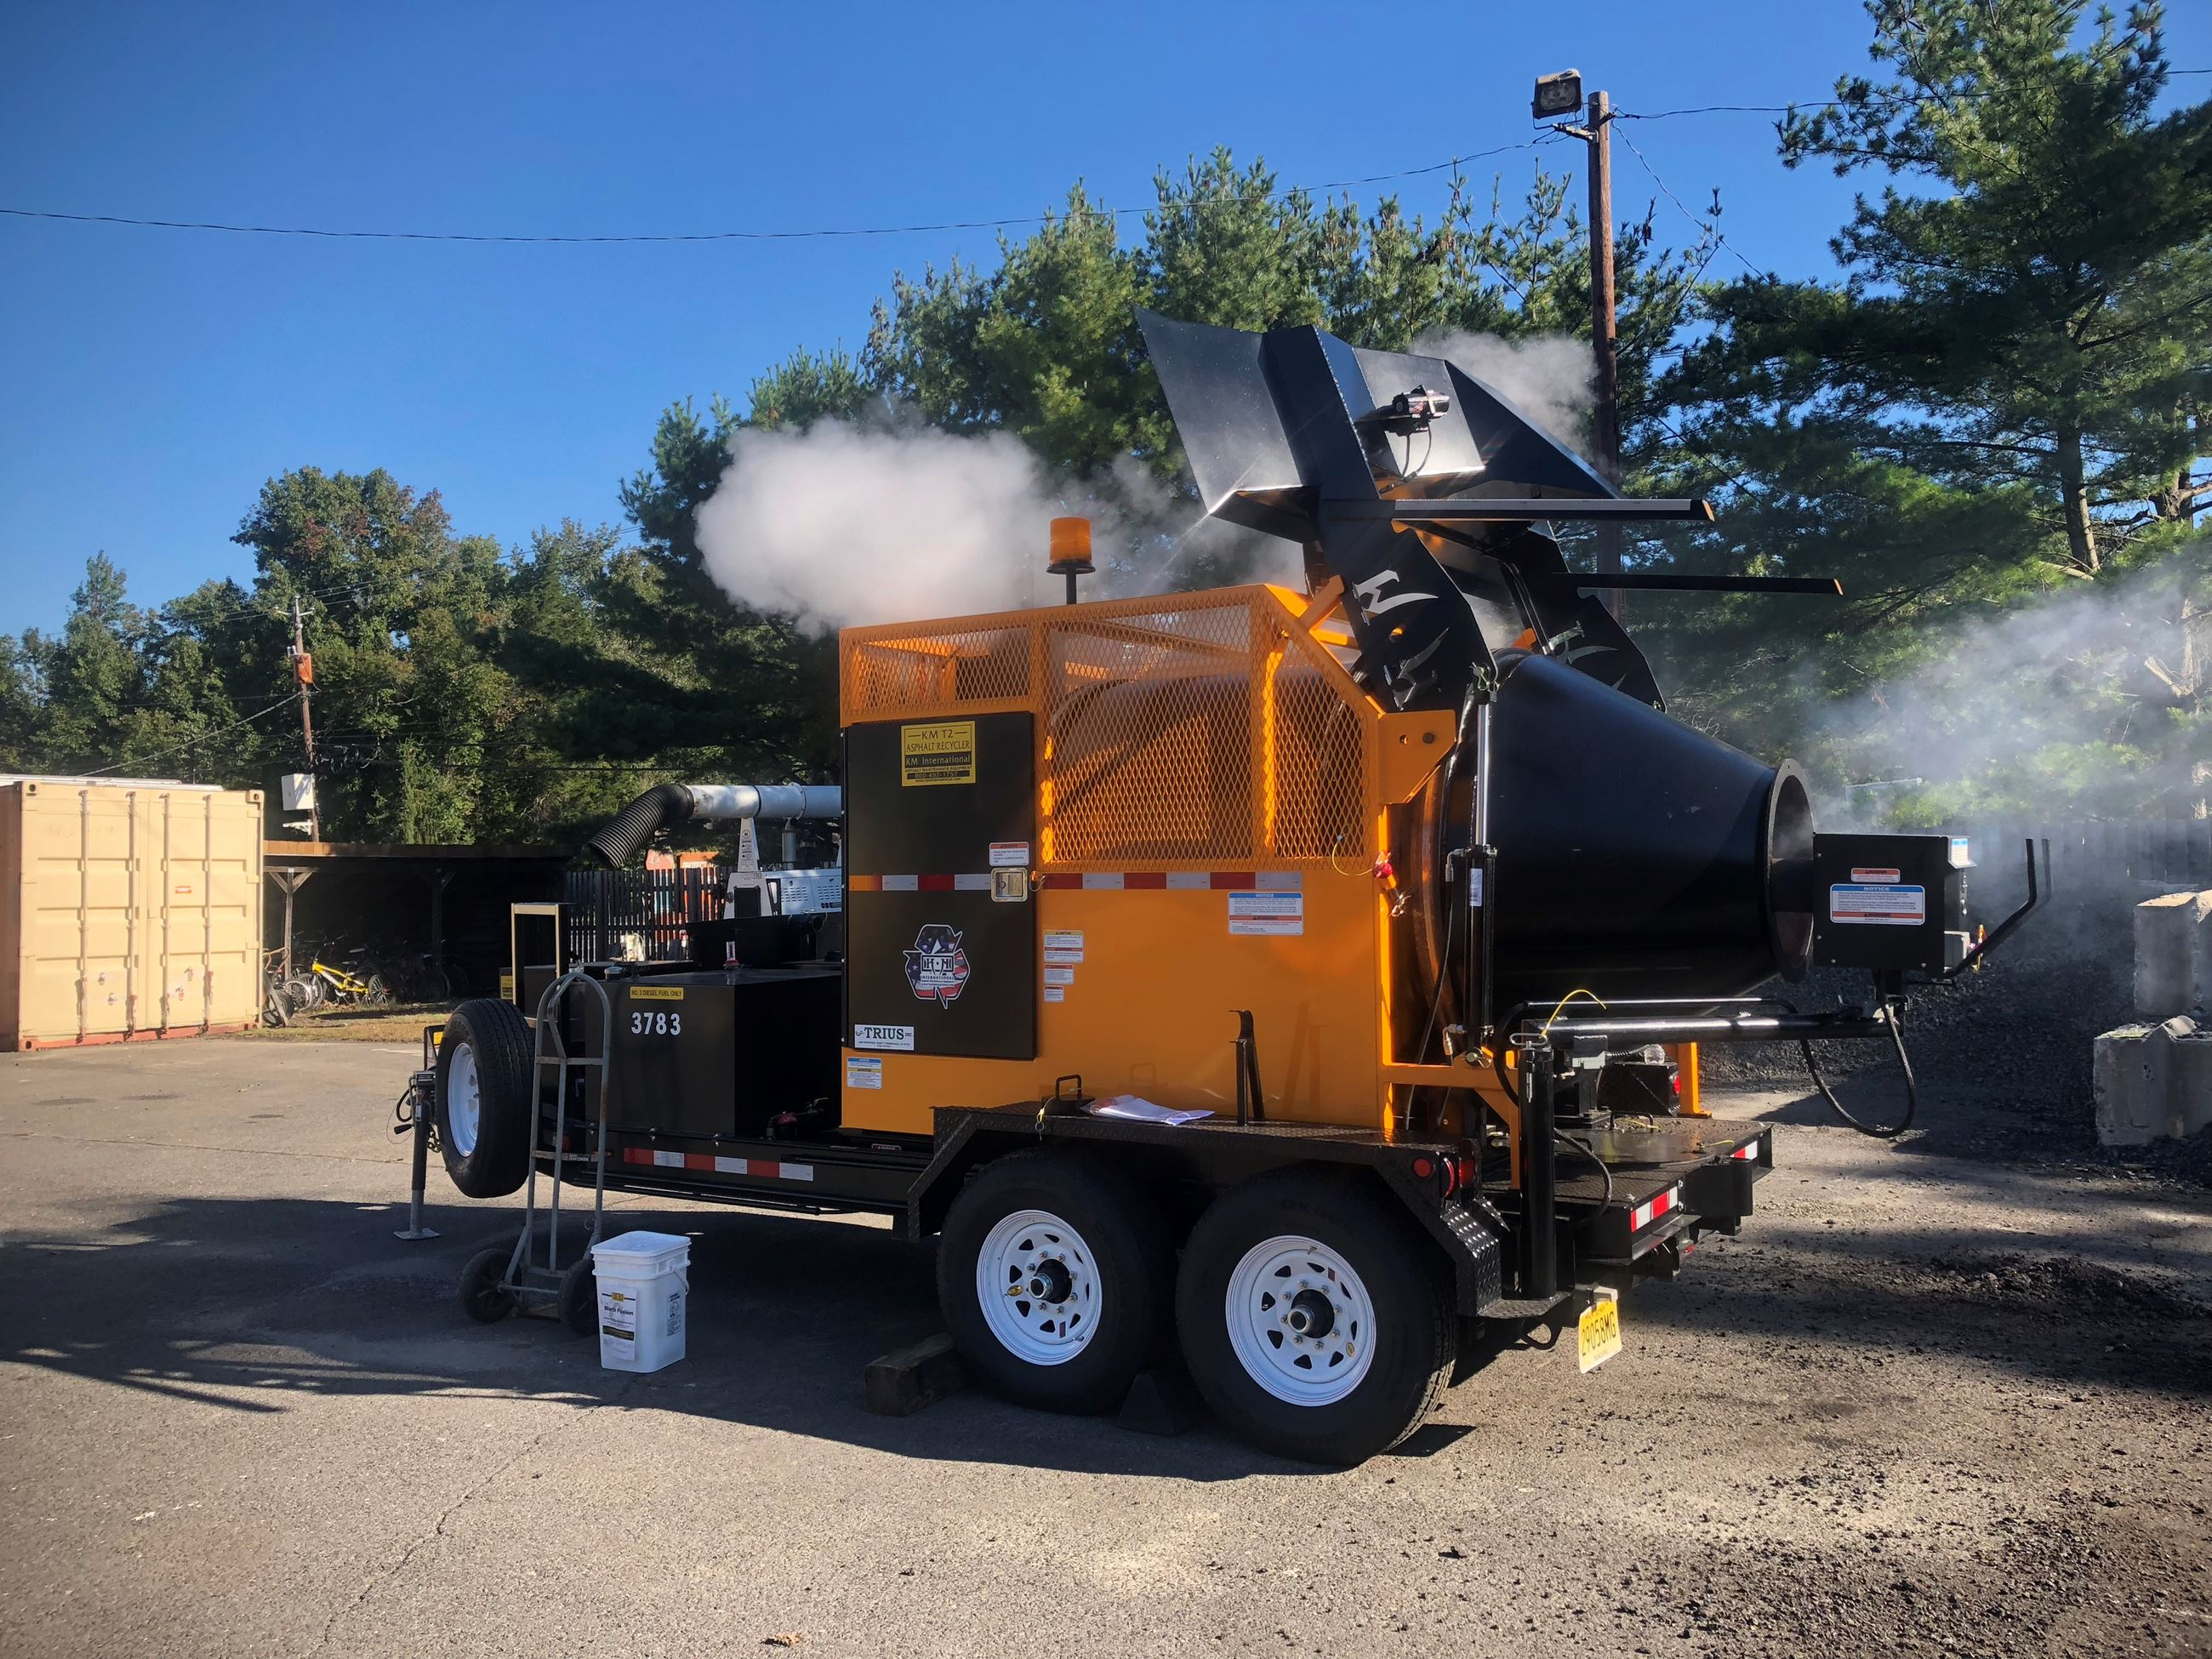 2018-10-17 DPW Asphalt Machine